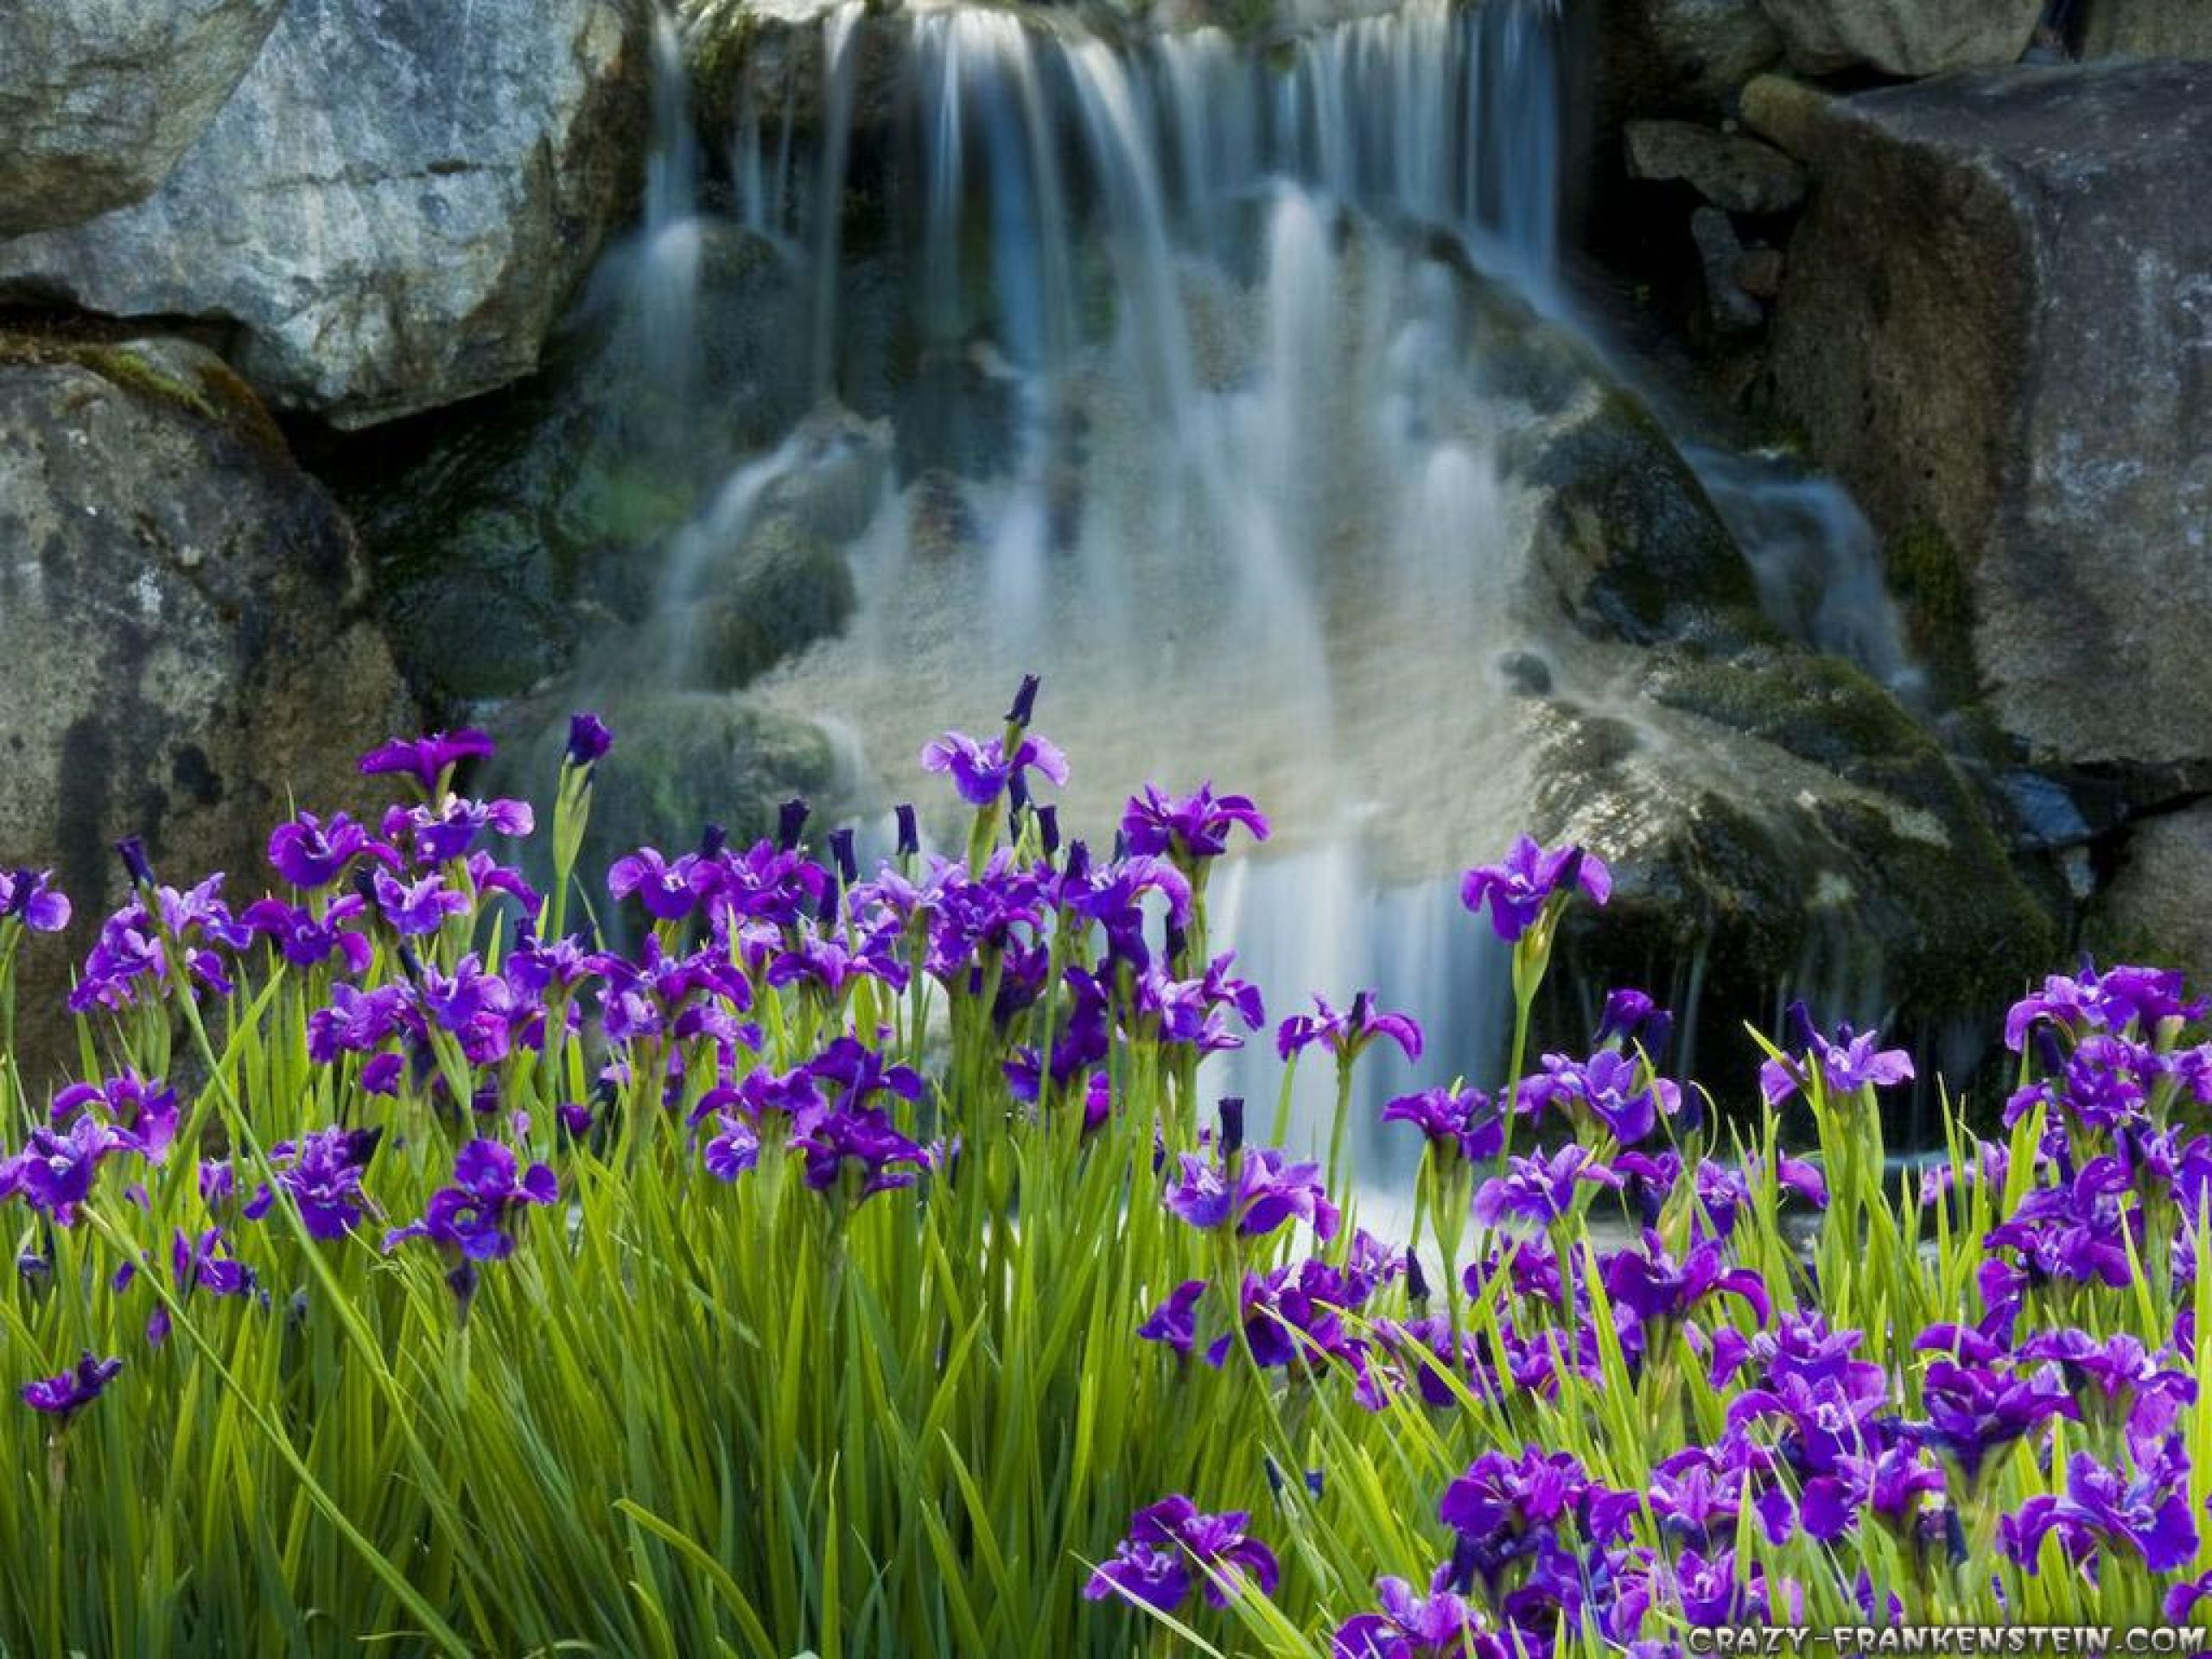 Field Of Purple Iris Flowers Near Waterfall Passion For